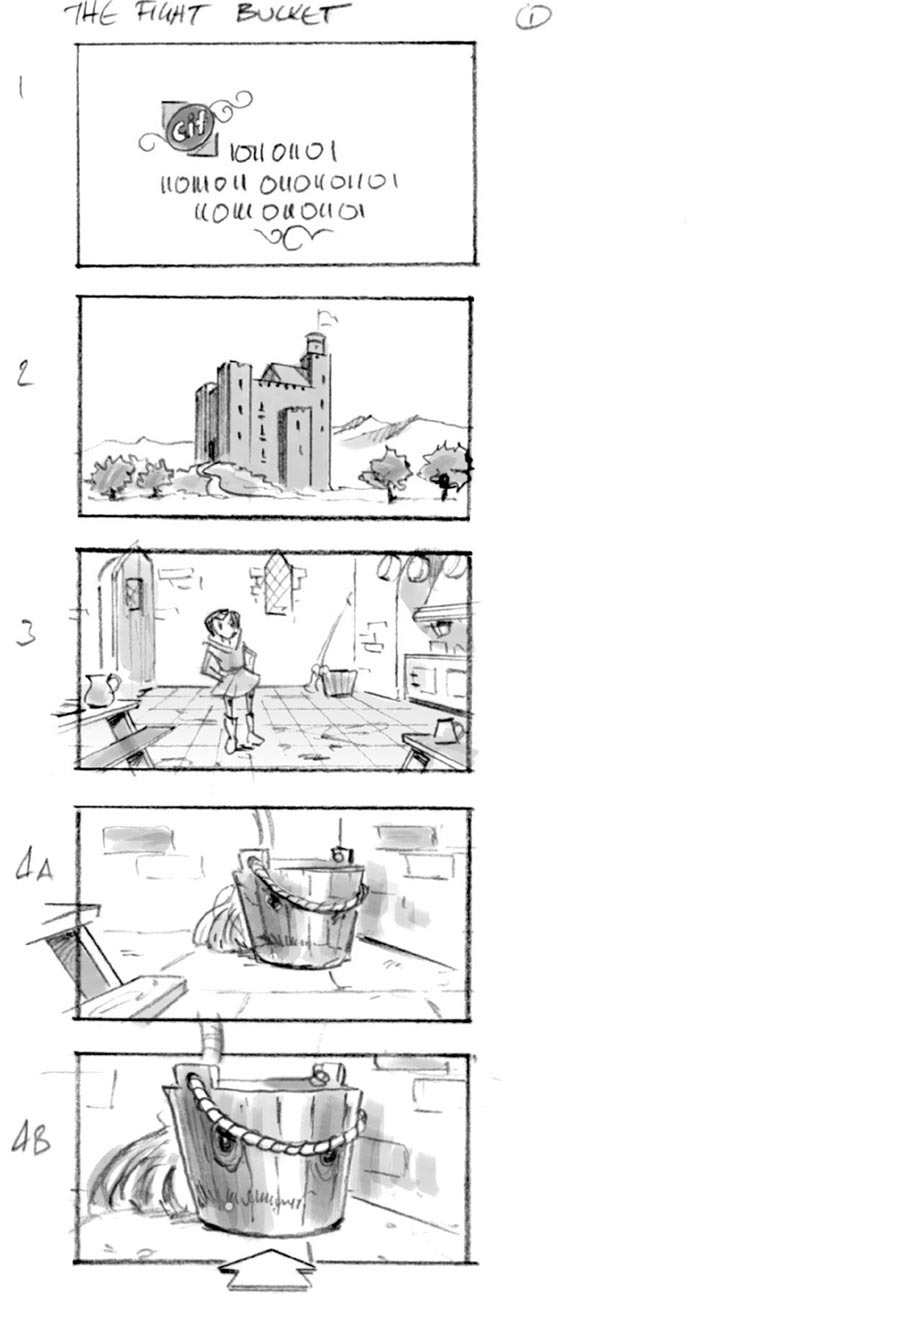 douglas ingram, storyboard art, cif household commercial